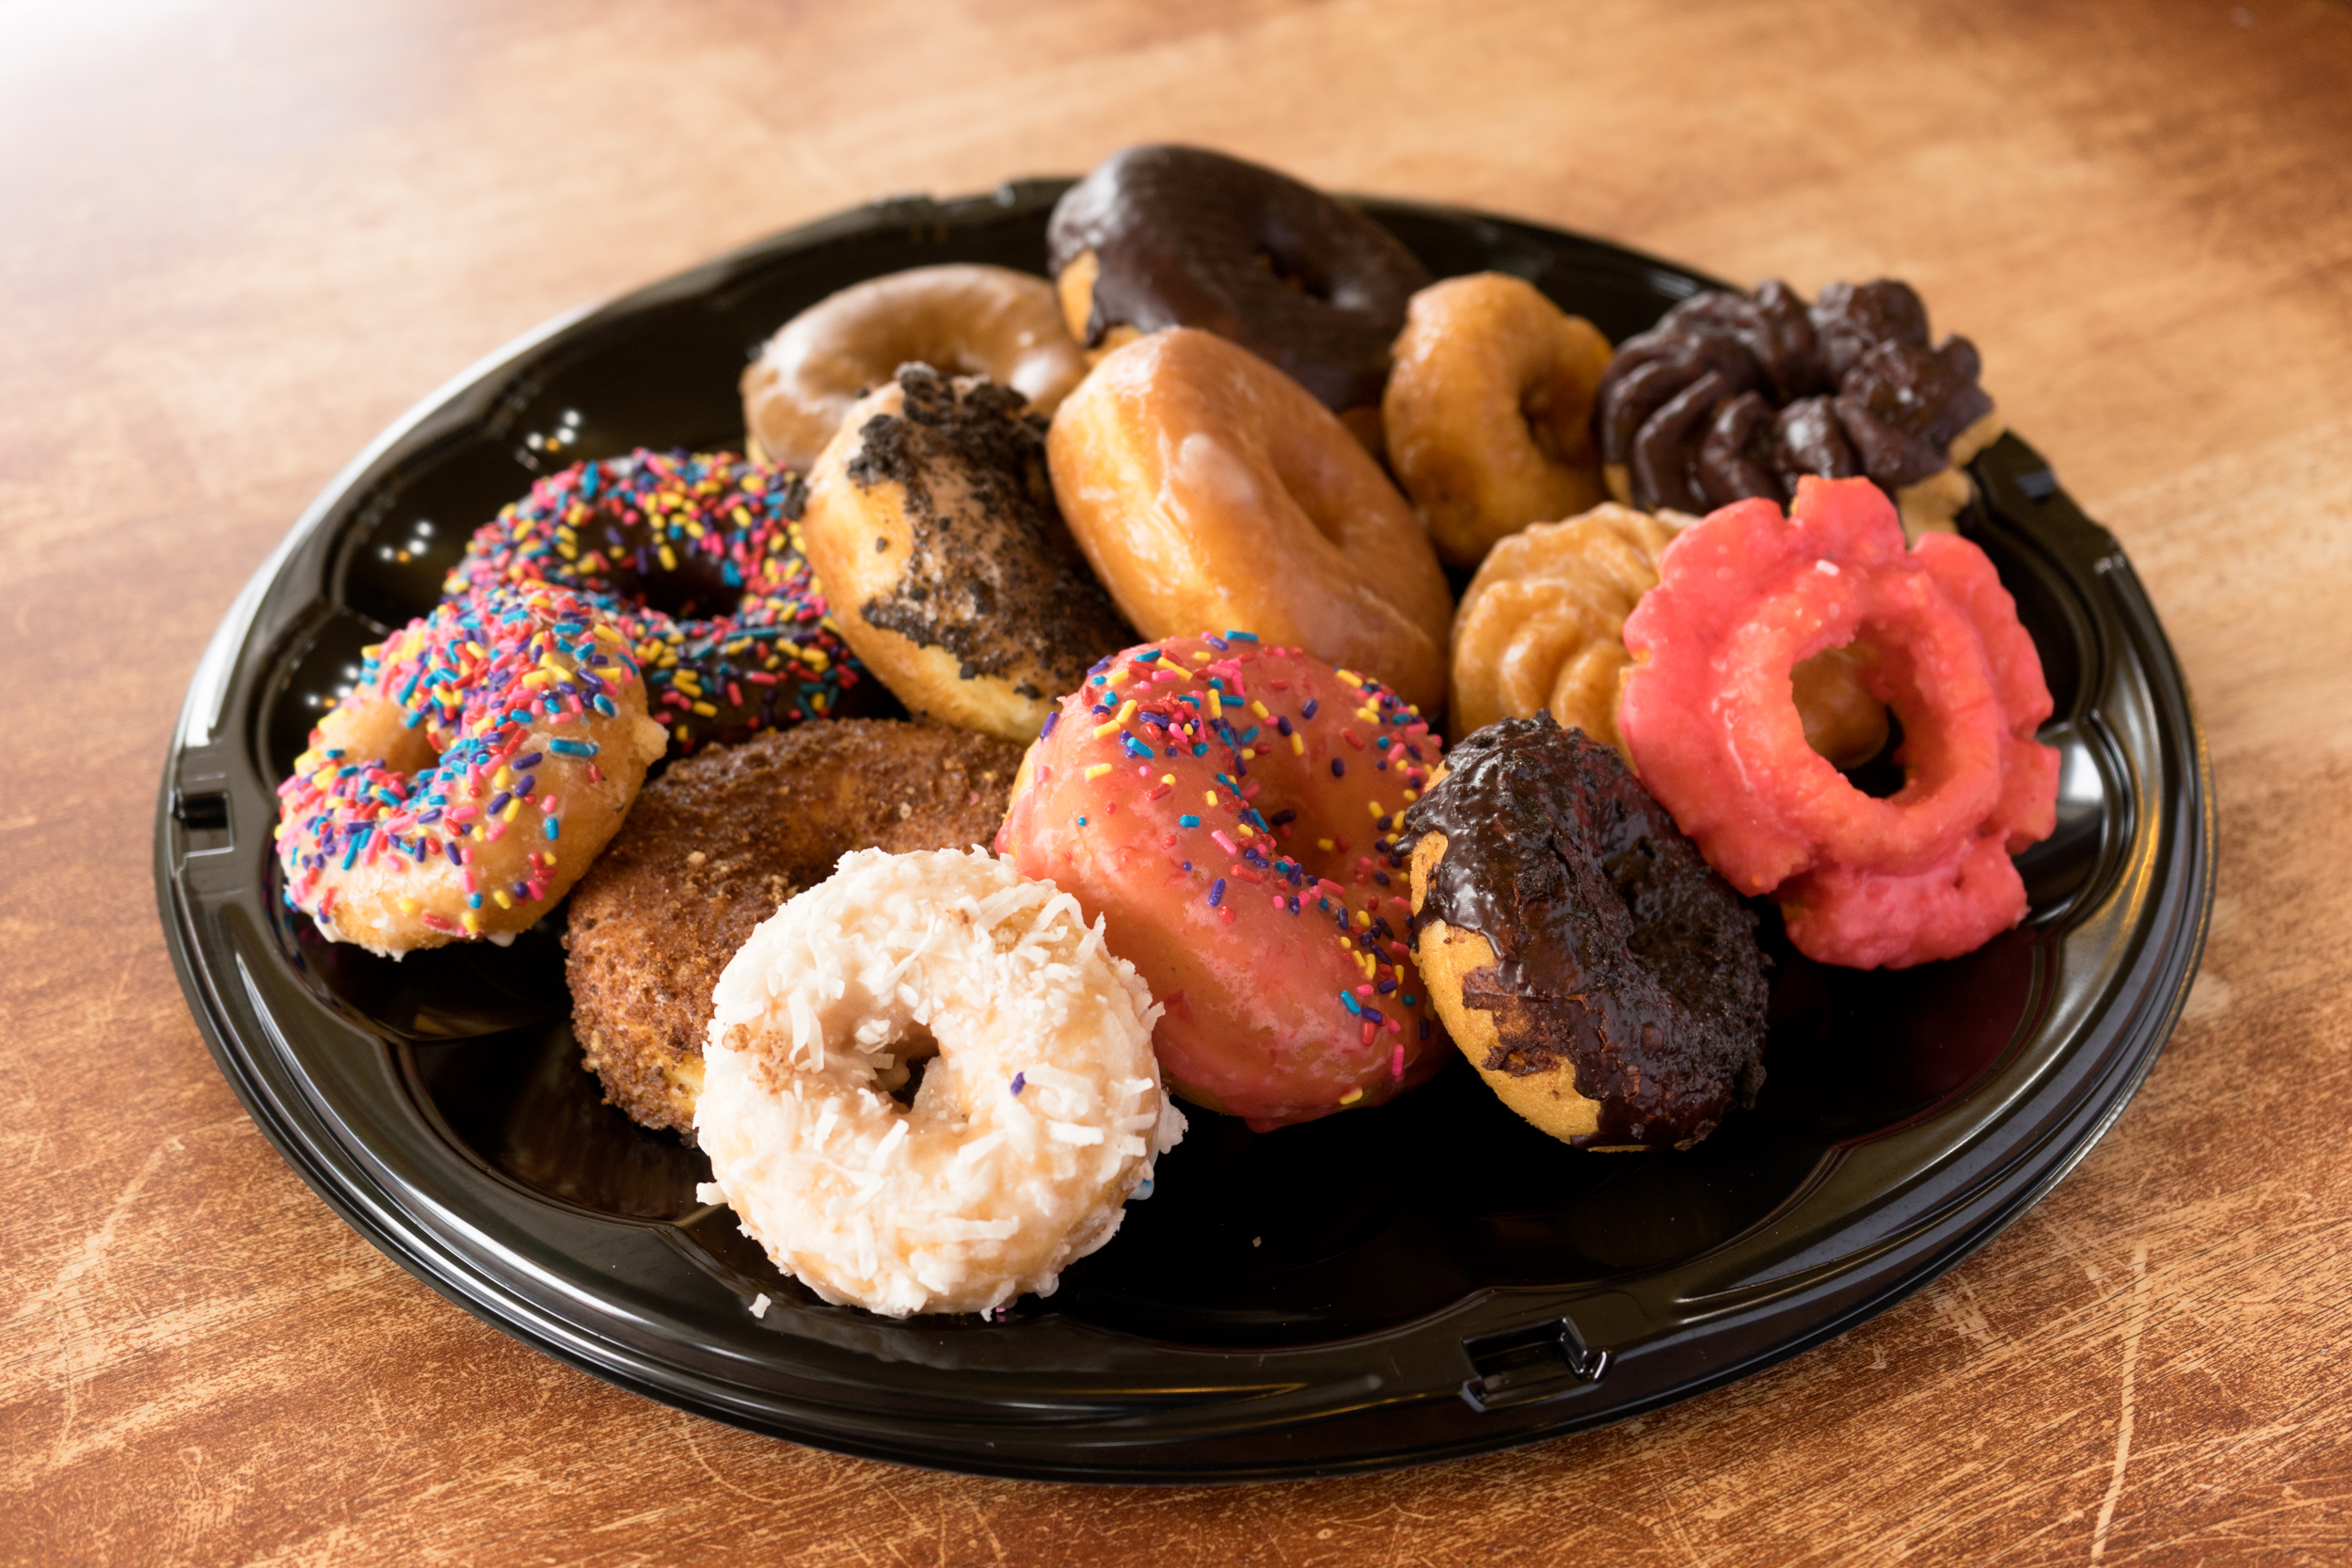 Best Breakfast Catering in Denver: Winchell's Donut House